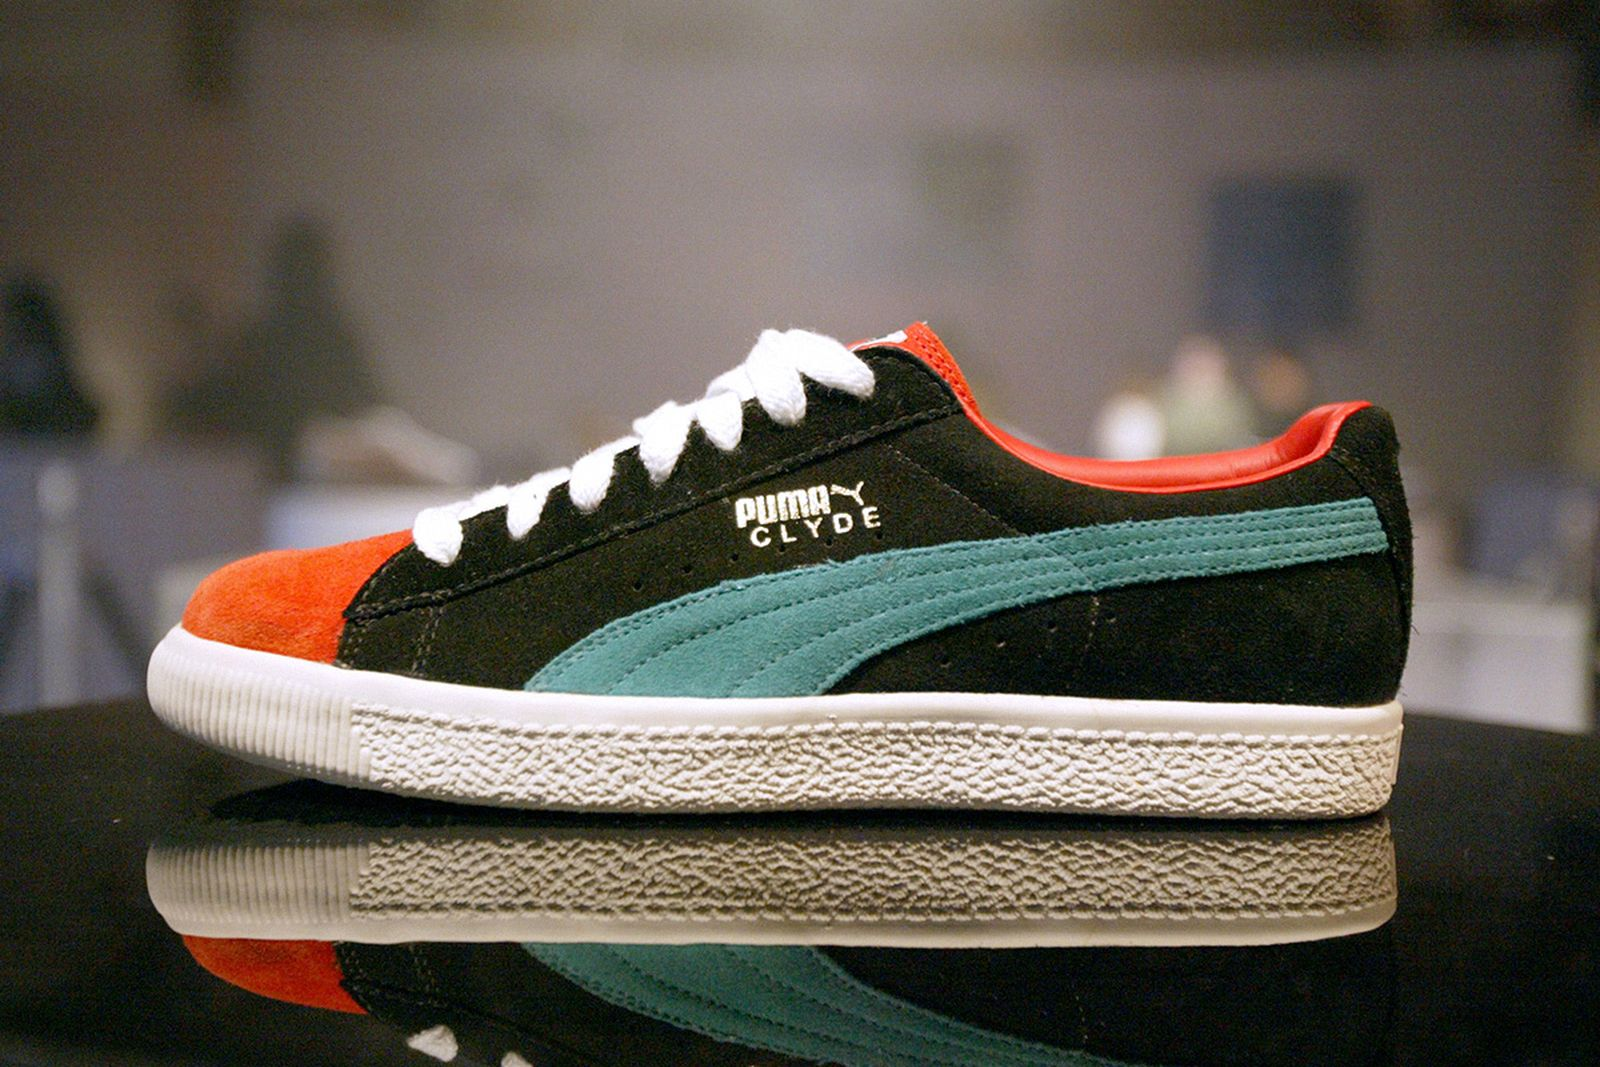 sneakers-through-the-years-adidas-puma-clyde-01